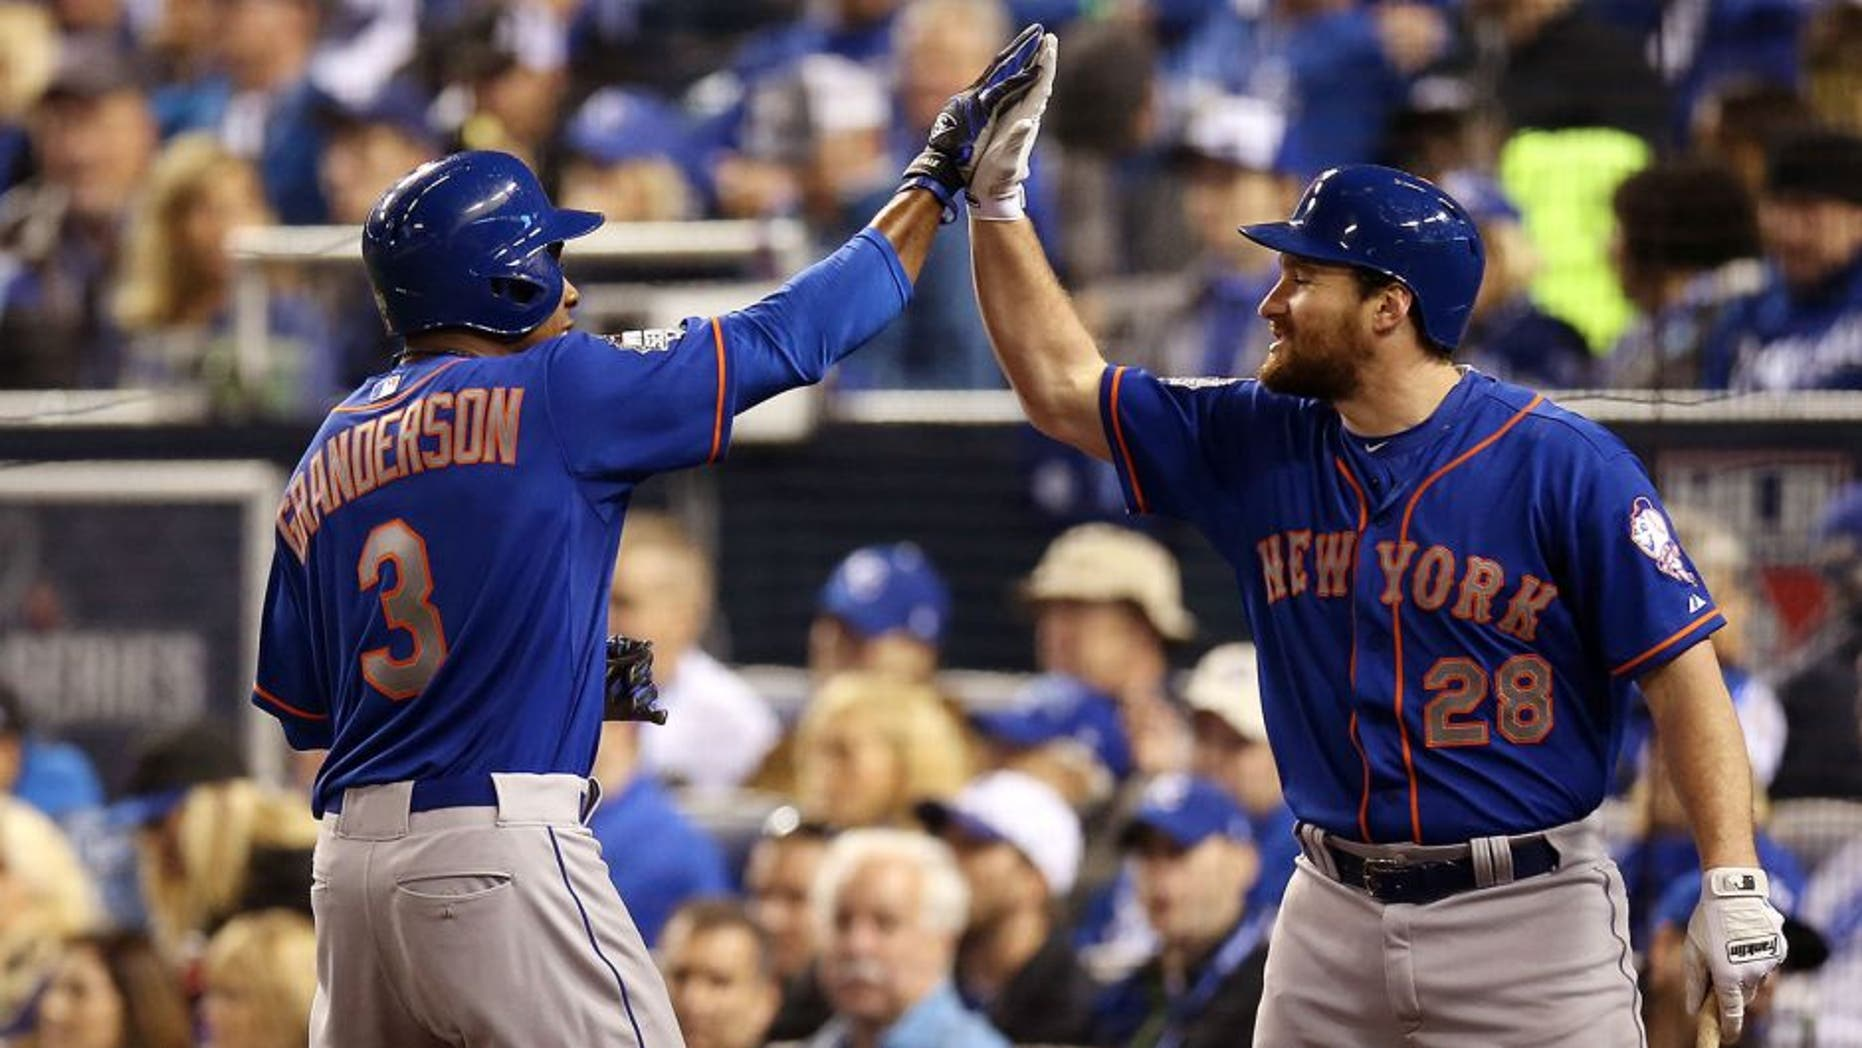 KANSAS CITY, MO - OCTOBER 27: Curtis Granderson #3 of the New York Mets celebrates with Daniel Murphy #28 after hitting a home run in the fifth inning during Game 1 of the 2015 World Series against the Kansas City Royals at Kauffman Stadium on Tuesday, October 27, 2015 in Kansas City, Missouri. (Photo by Brad Mangin/MLB Photos via Getty Images)